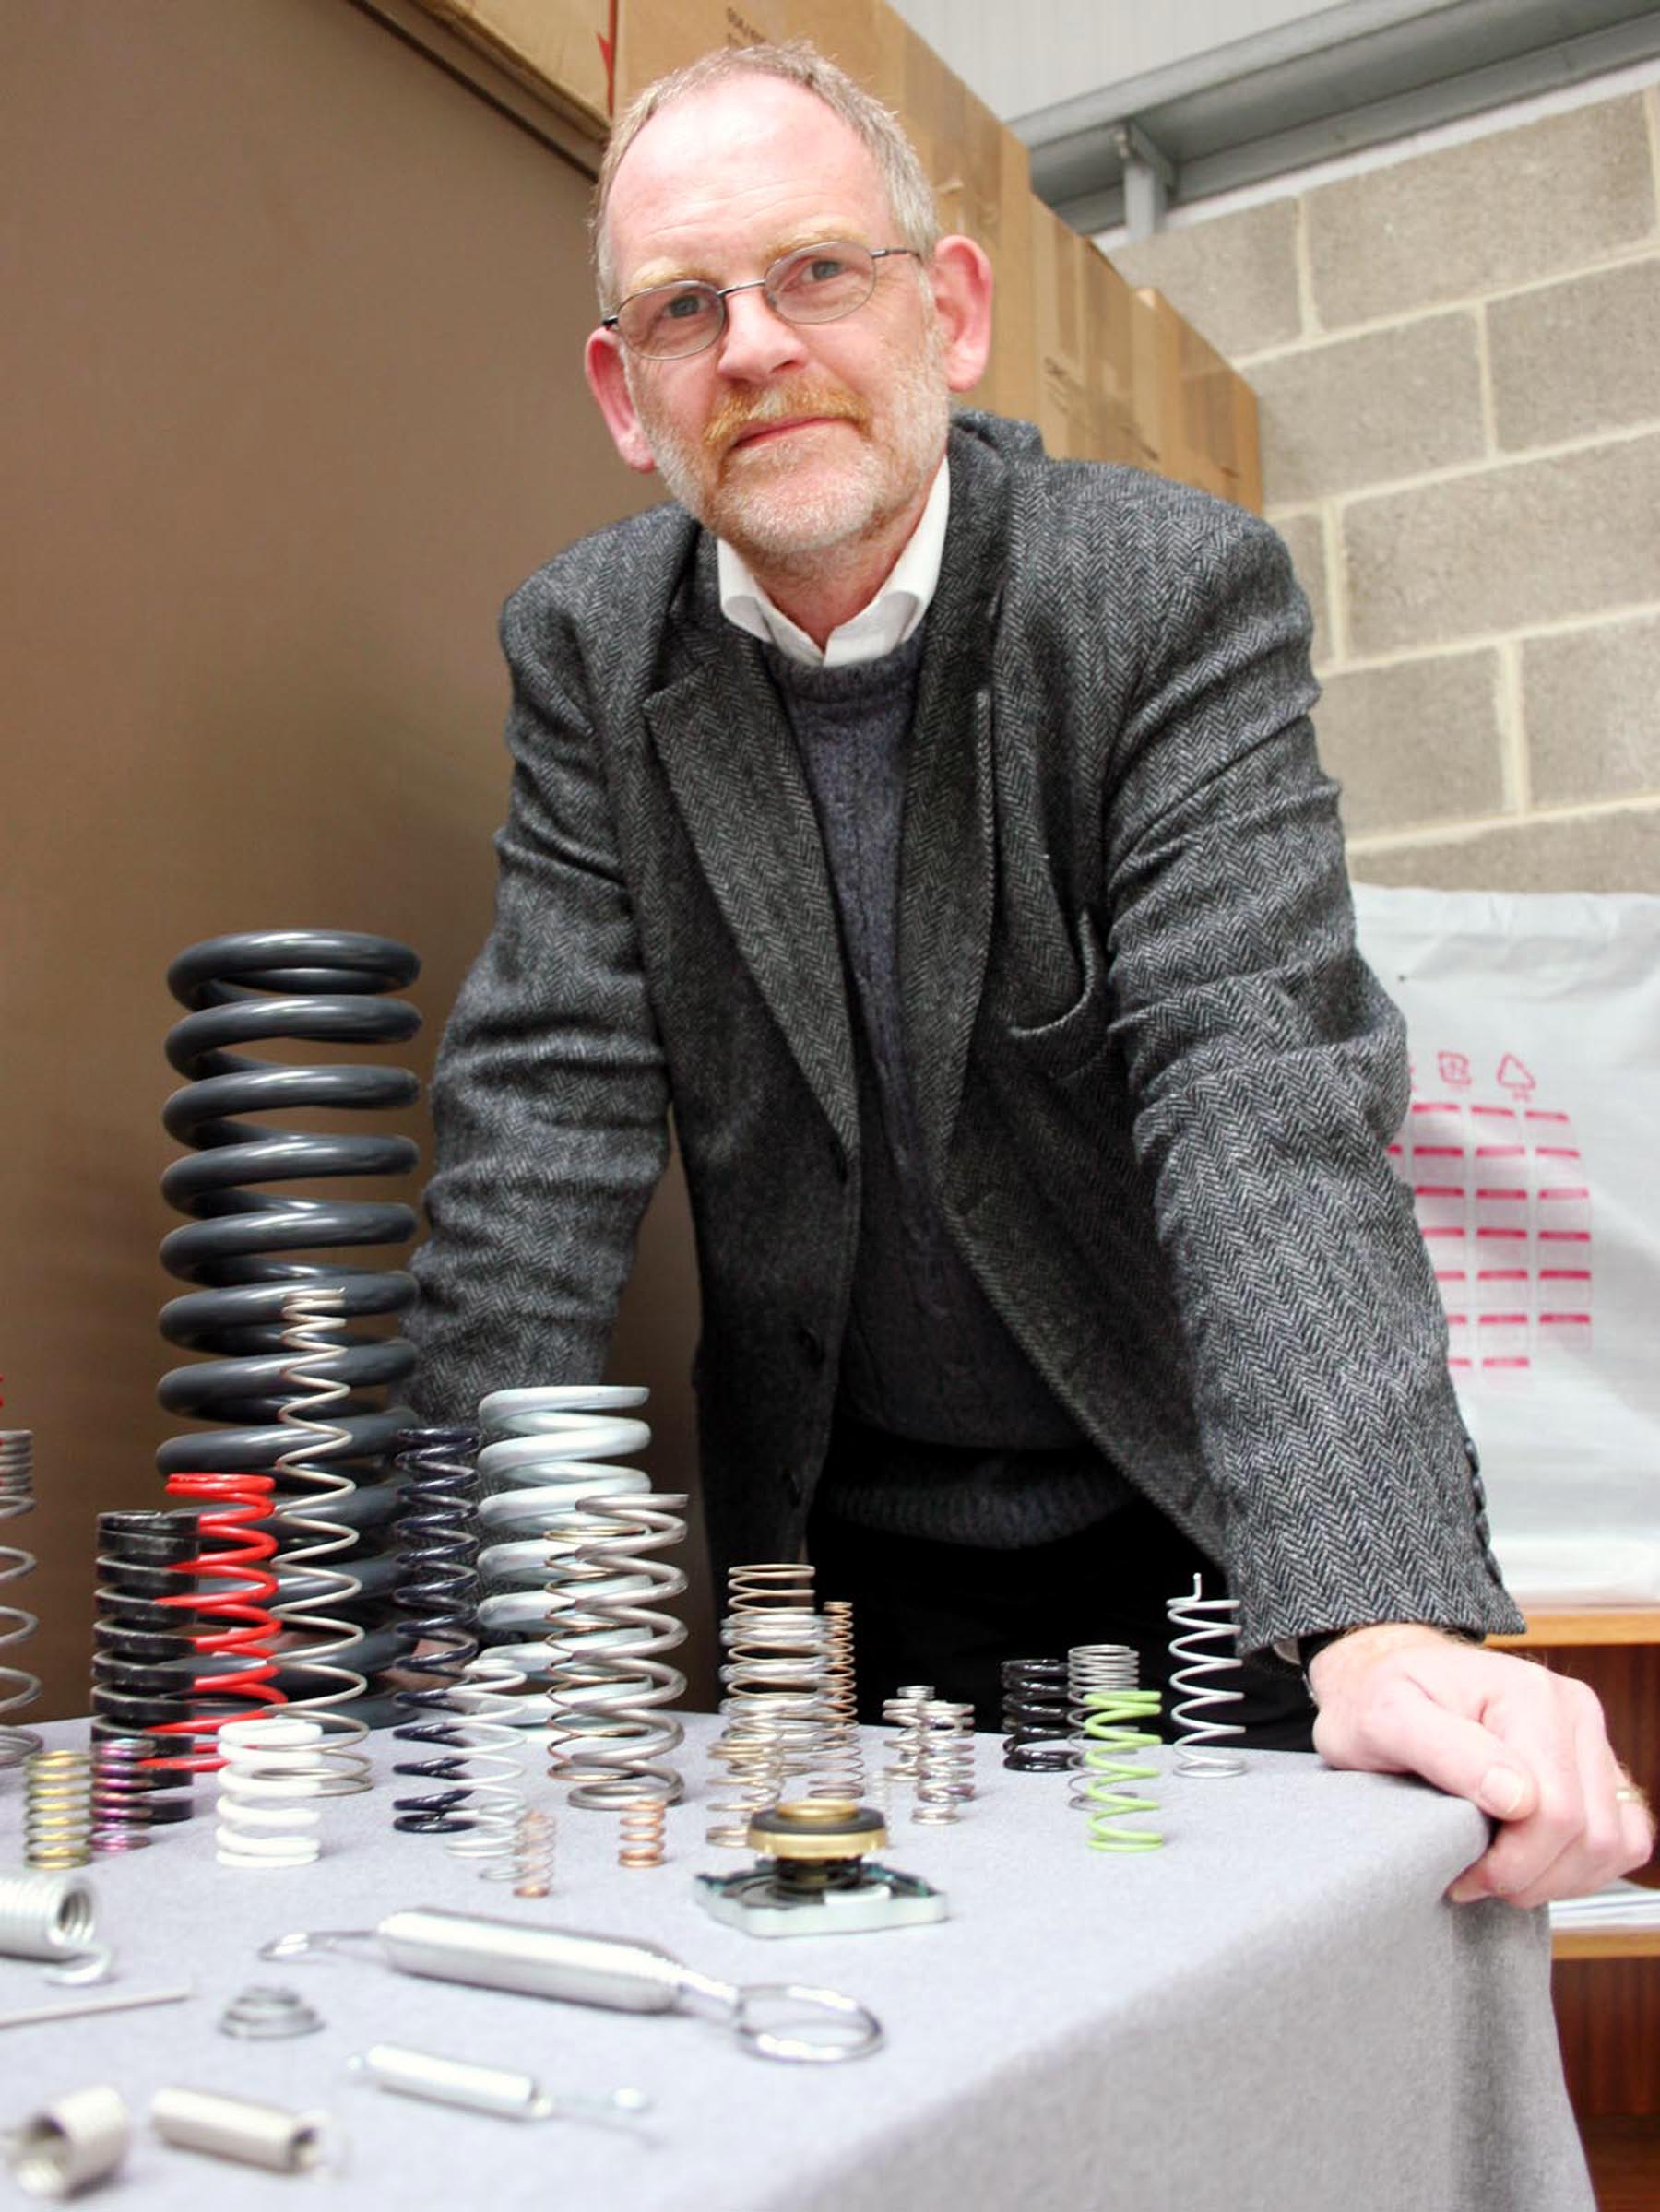 Airedale Springs chairman Tim Parkinson with some of the items made by the Haworth factory